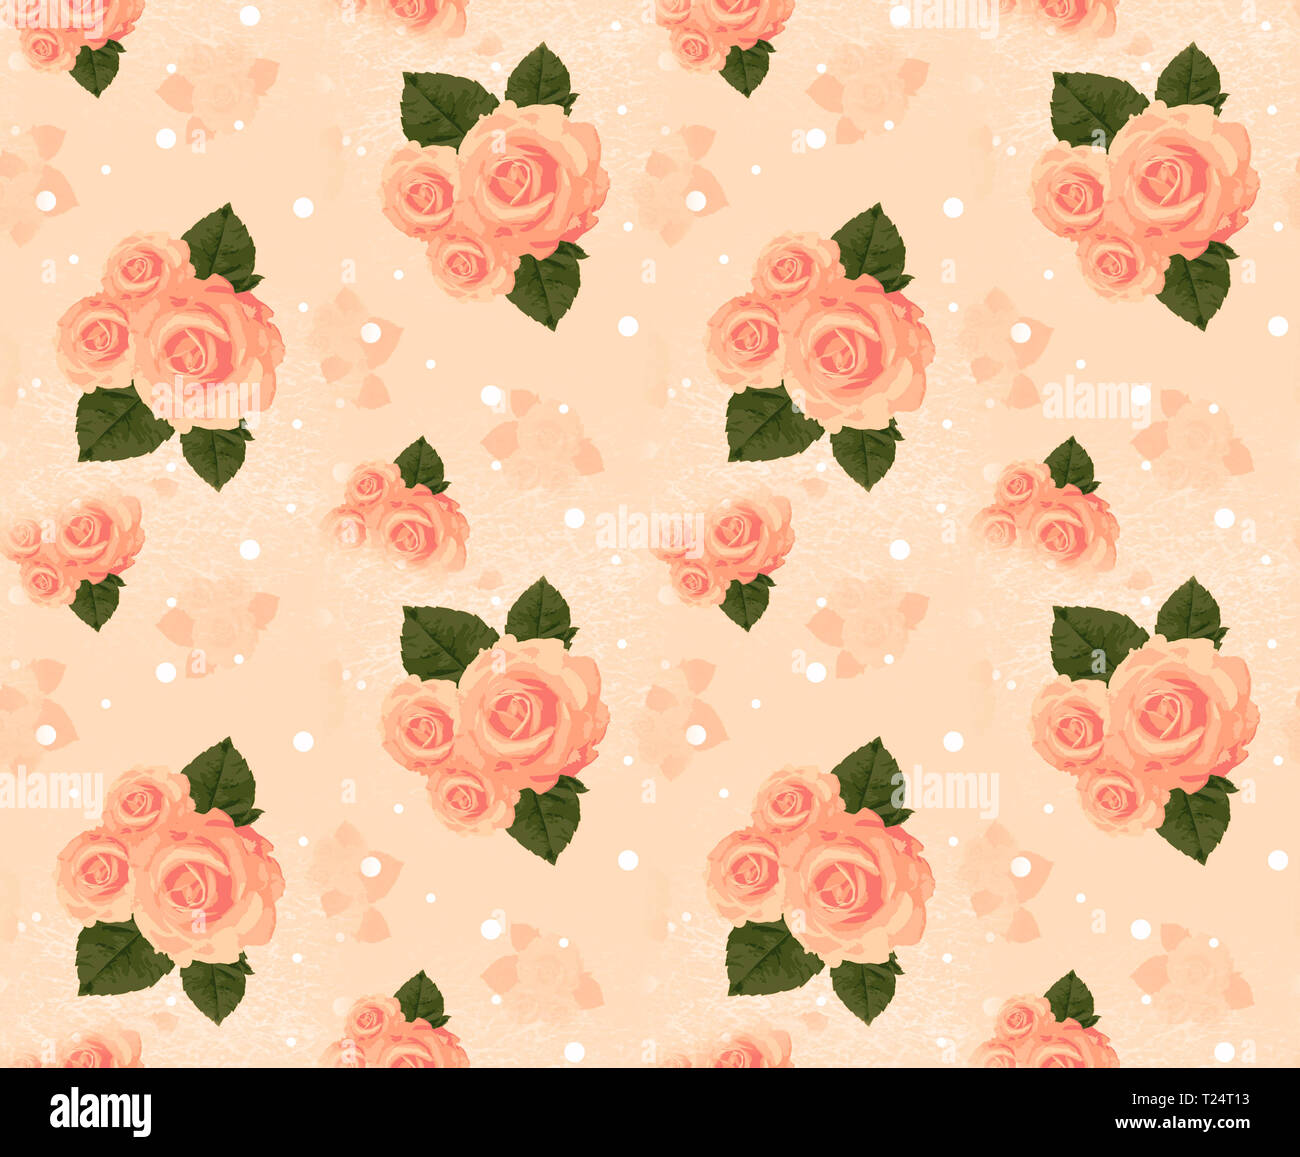 Seamless wall-paper with roses, cream. A vintage decorative pattern, a print for fabric, interior design, wedding invitation, a background. A basis fo - Stock Image